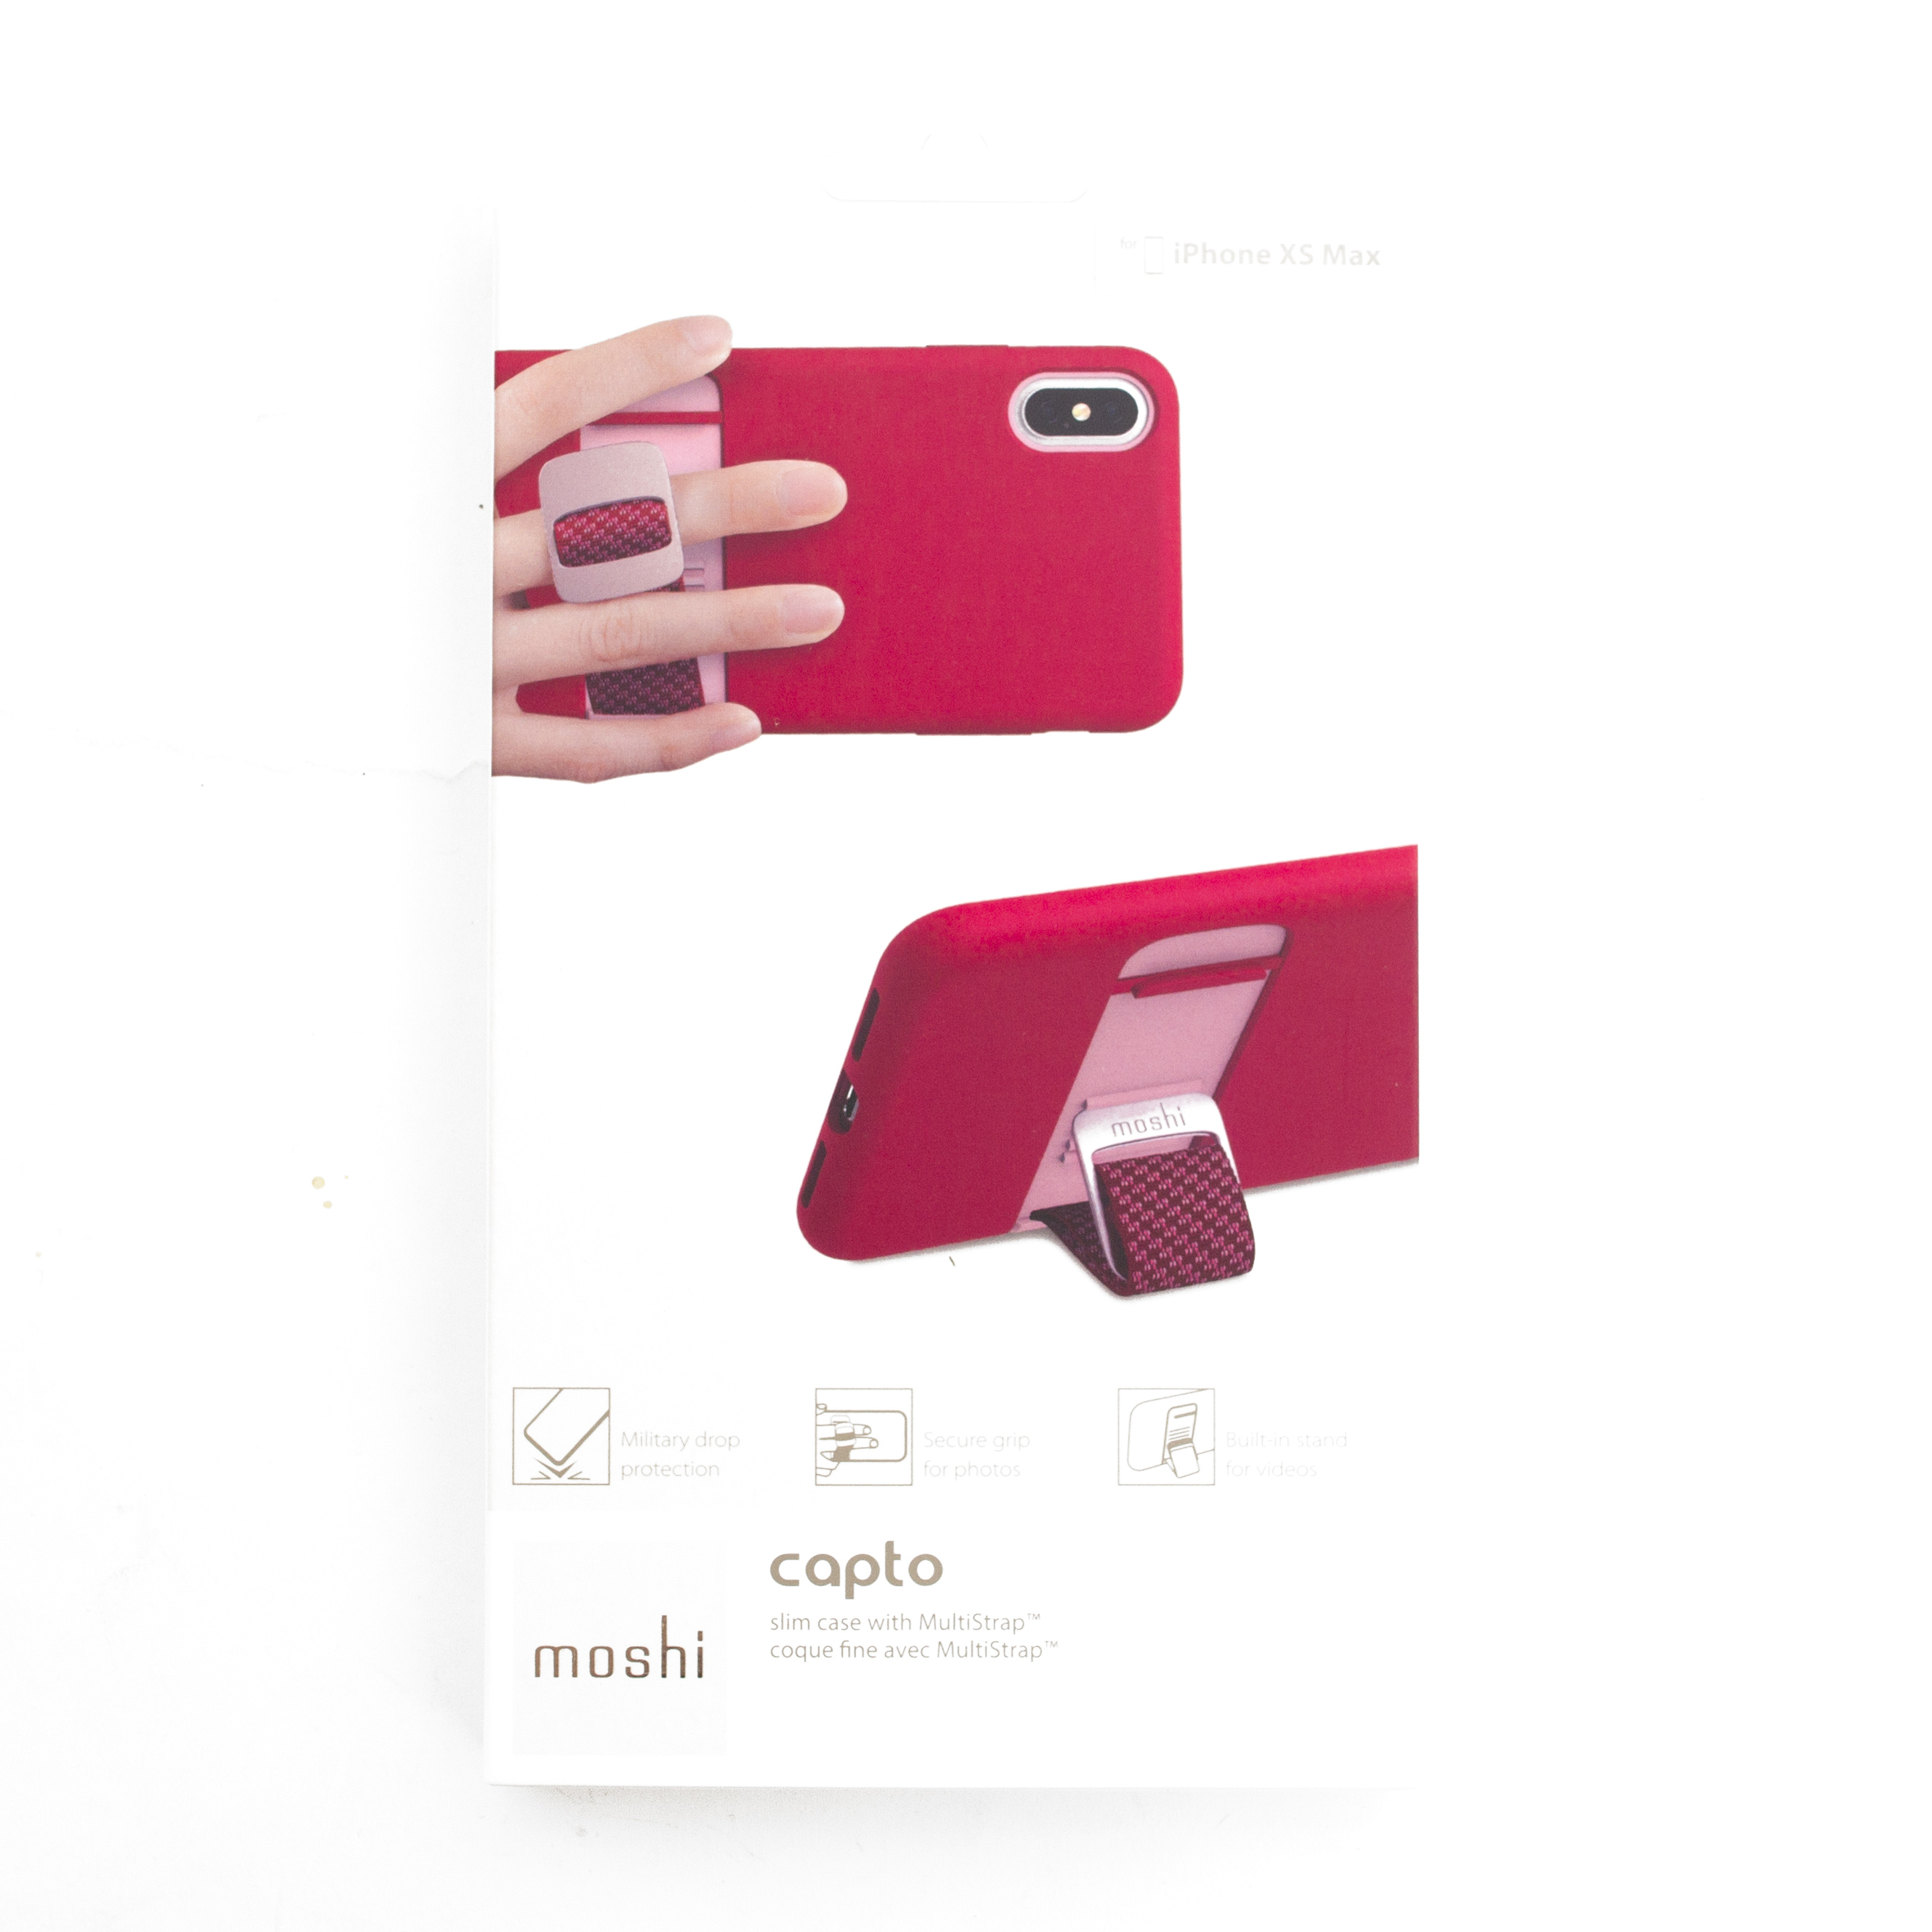 Moshi, Capto, Slim Case, iPhone